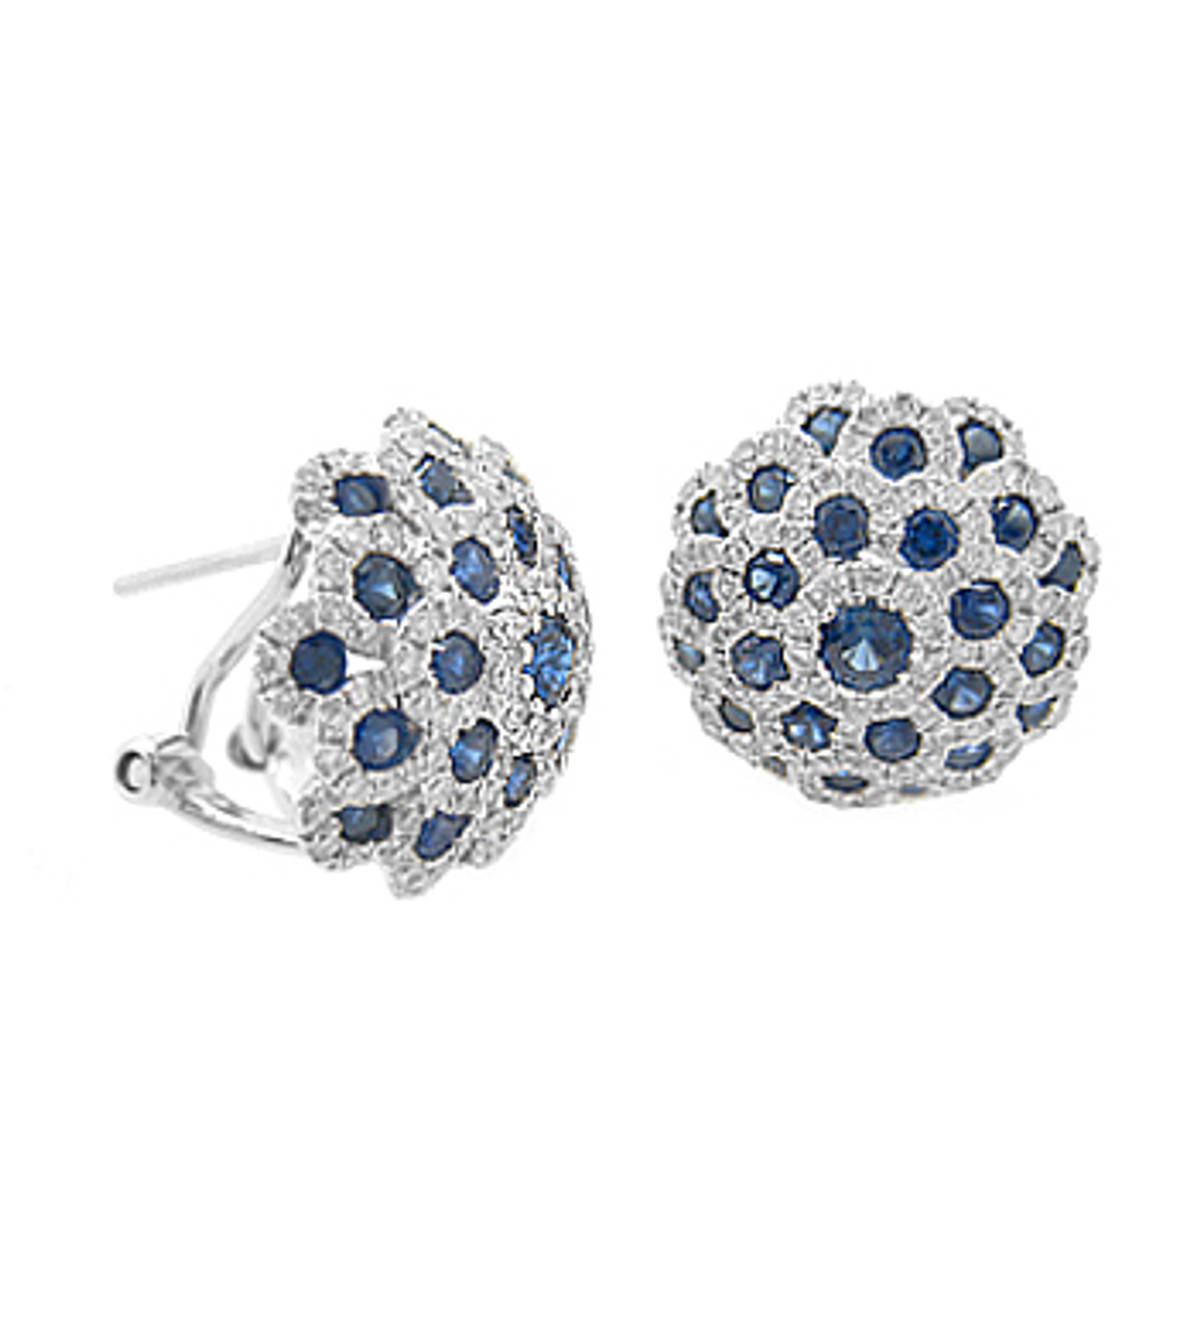 ROUND SAPPHIRE AND DIAMOND CLUSTER STUD EARRINGSPictured item: sapphire 1.72ct/diamonds 1.03ct set in 18k white gold